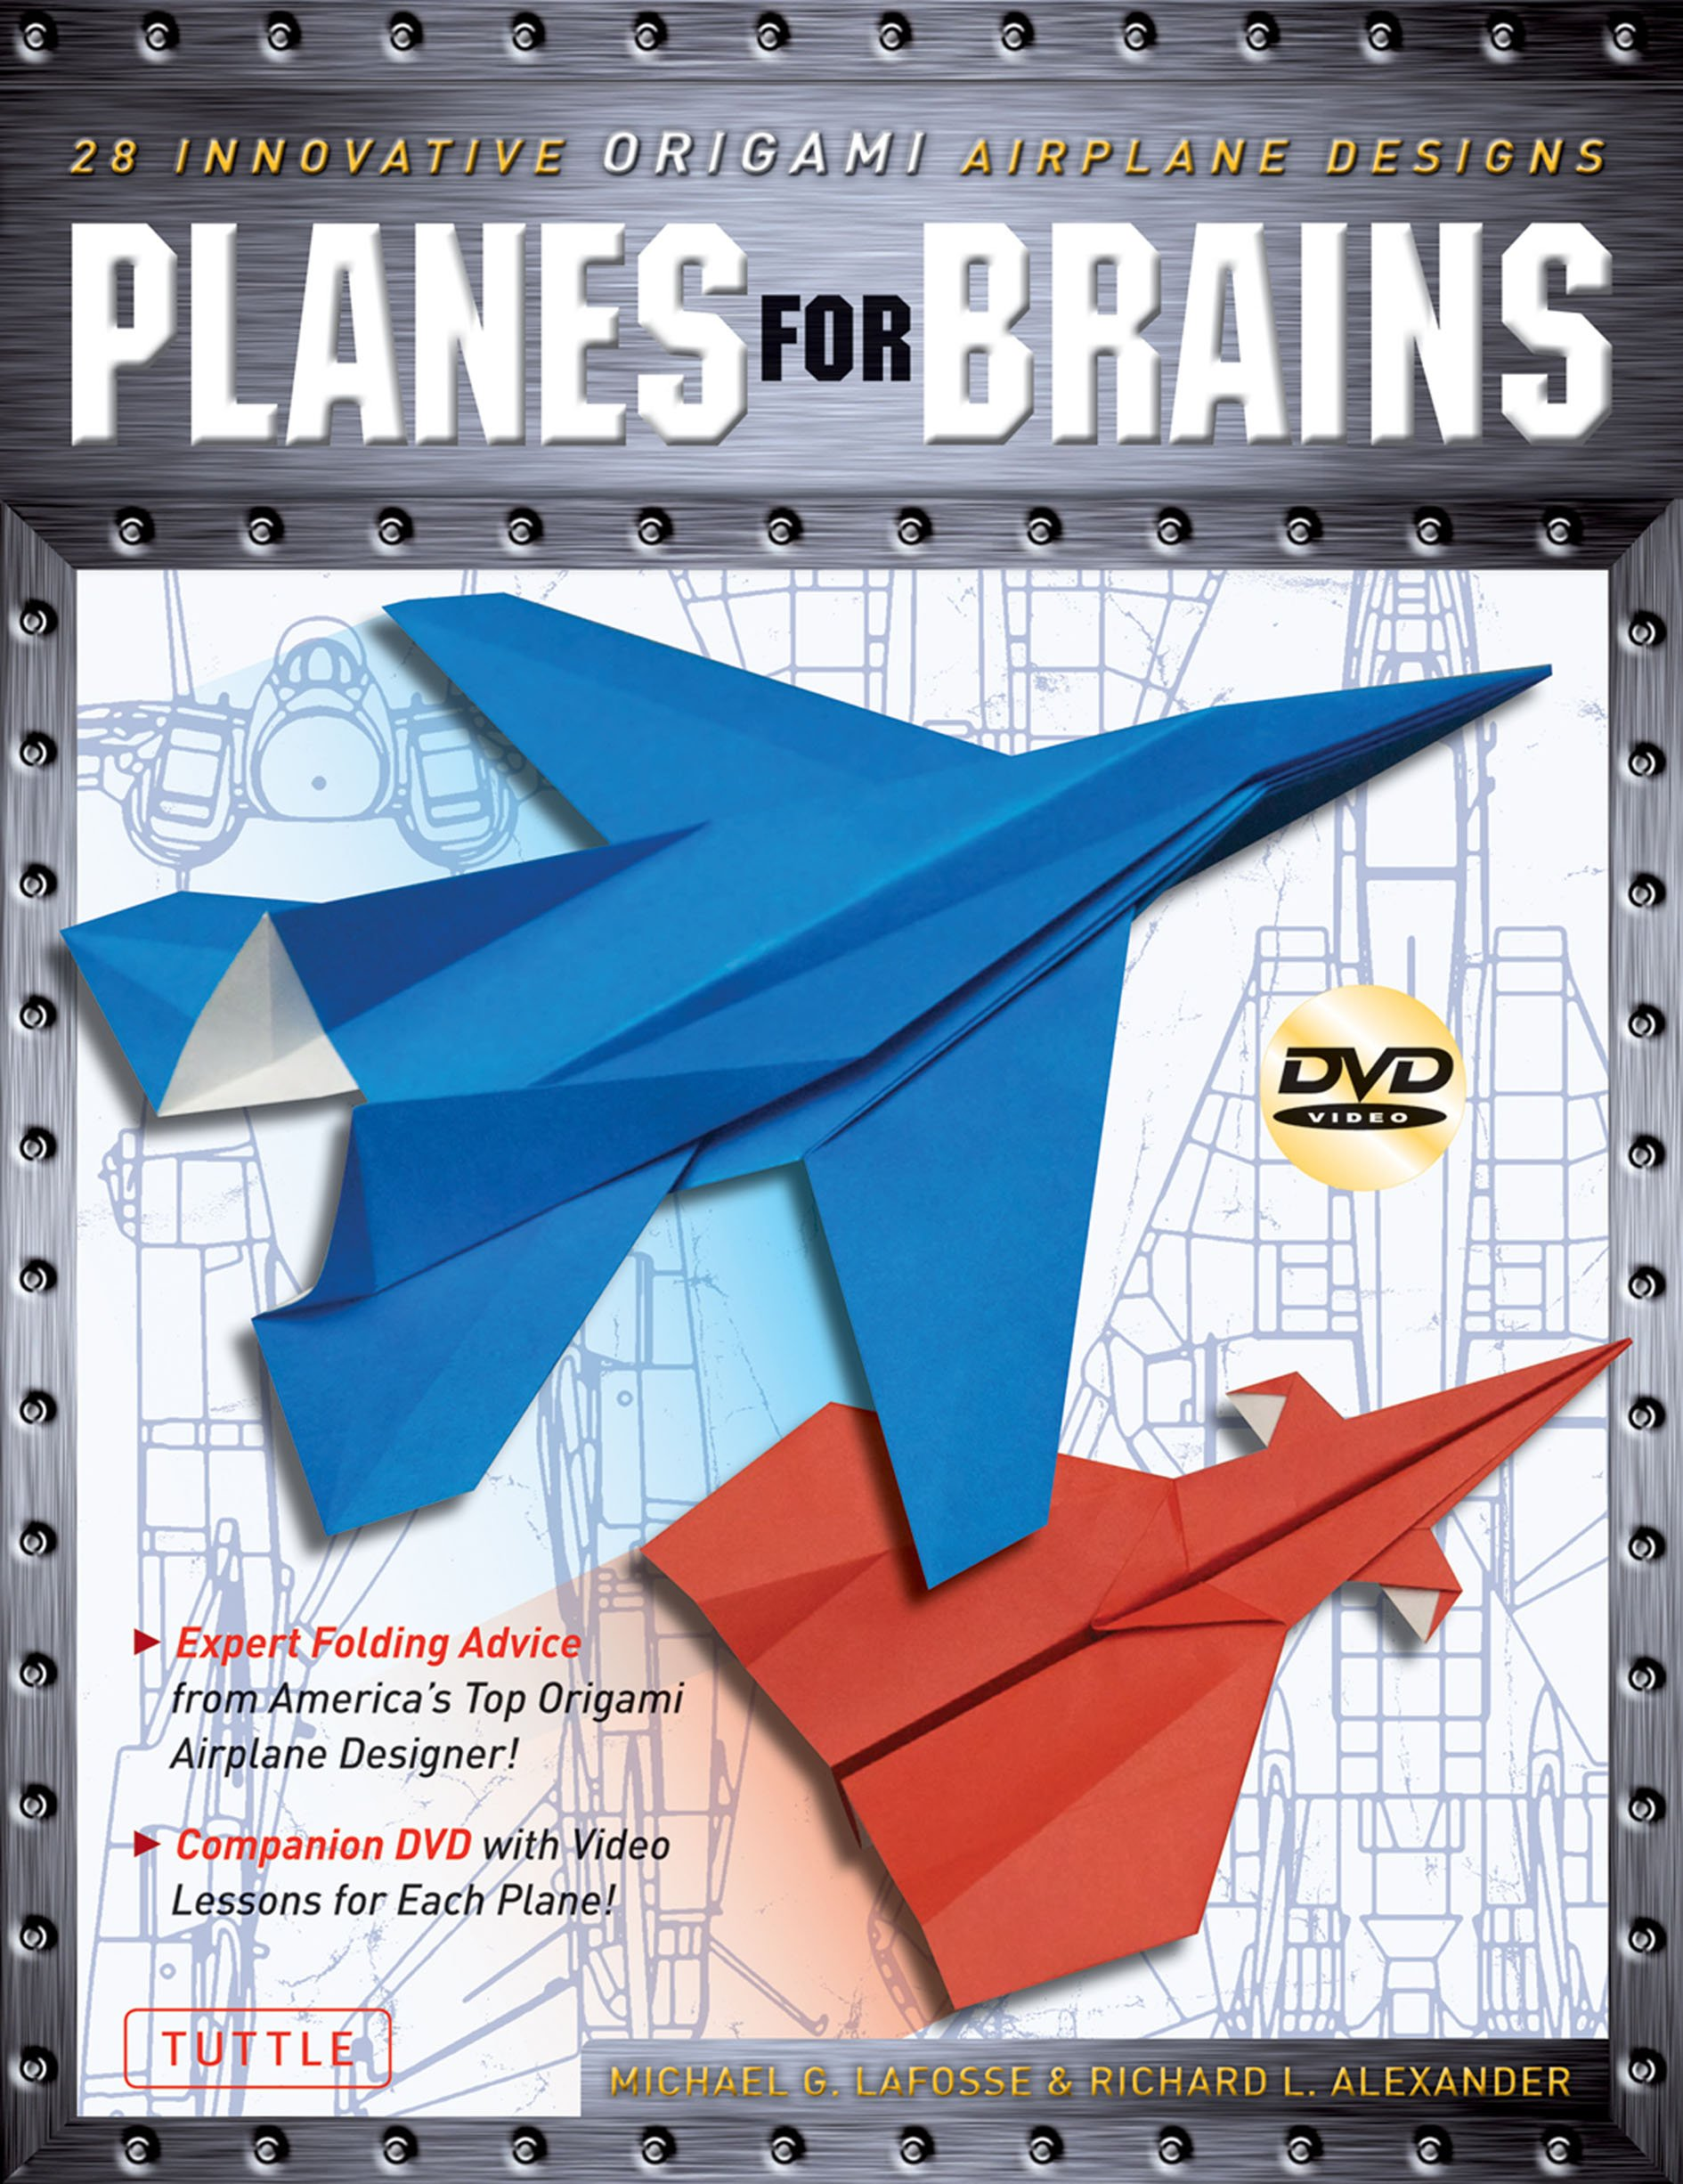 BEST ORIGAMI PAPER JET - How to make a paper airplane model | F-14 ... | 2452x1890